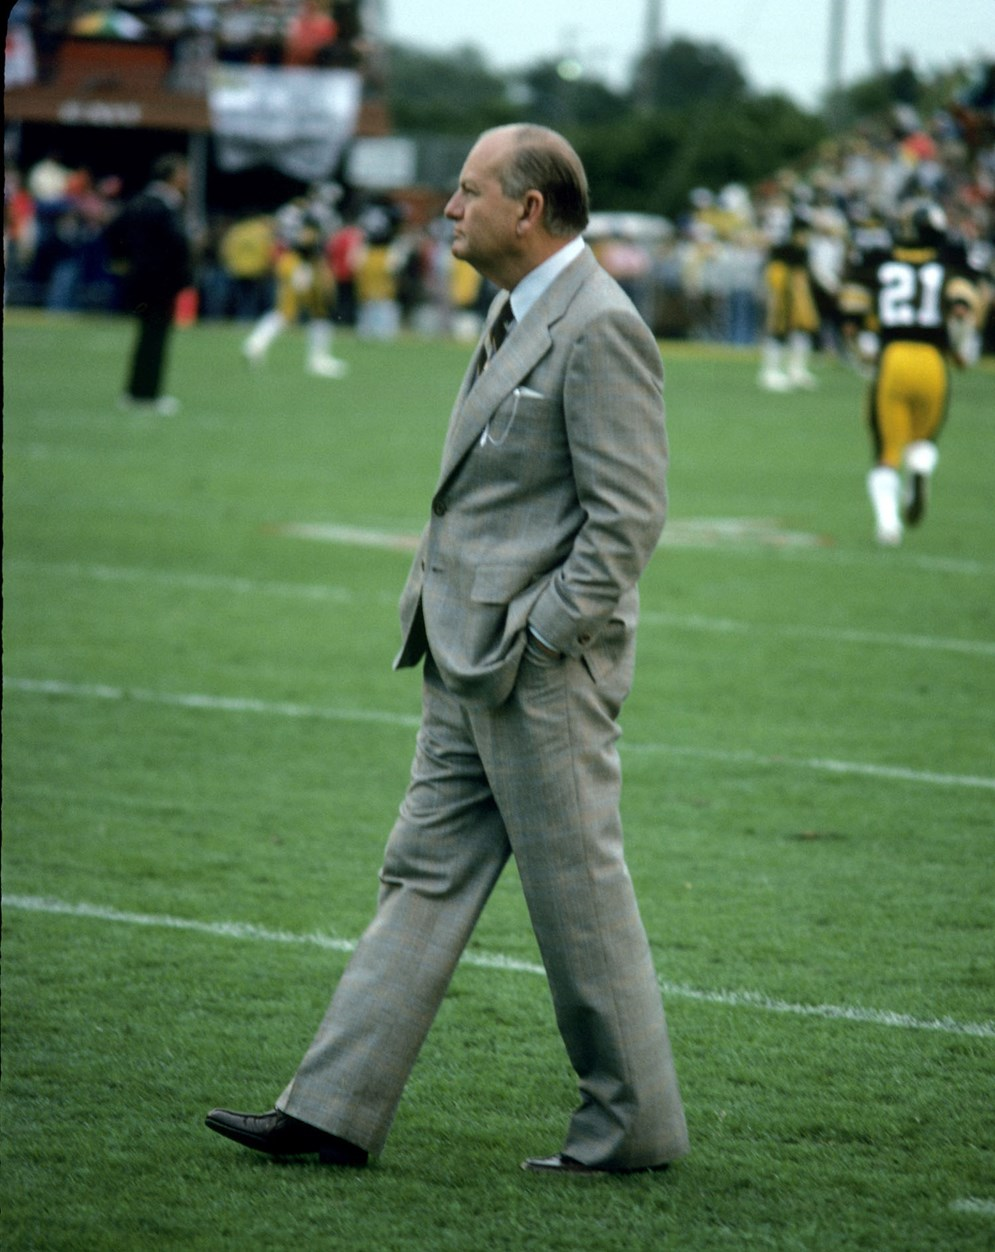 Dallas Cowboys president and general manager Tex Schramm stalks the sidelines before Super Bowl XIII, a 35-31 loss to the Pittsburgh Steelers on Jan. 21, 1979. (AP Photo/NFL Photos)